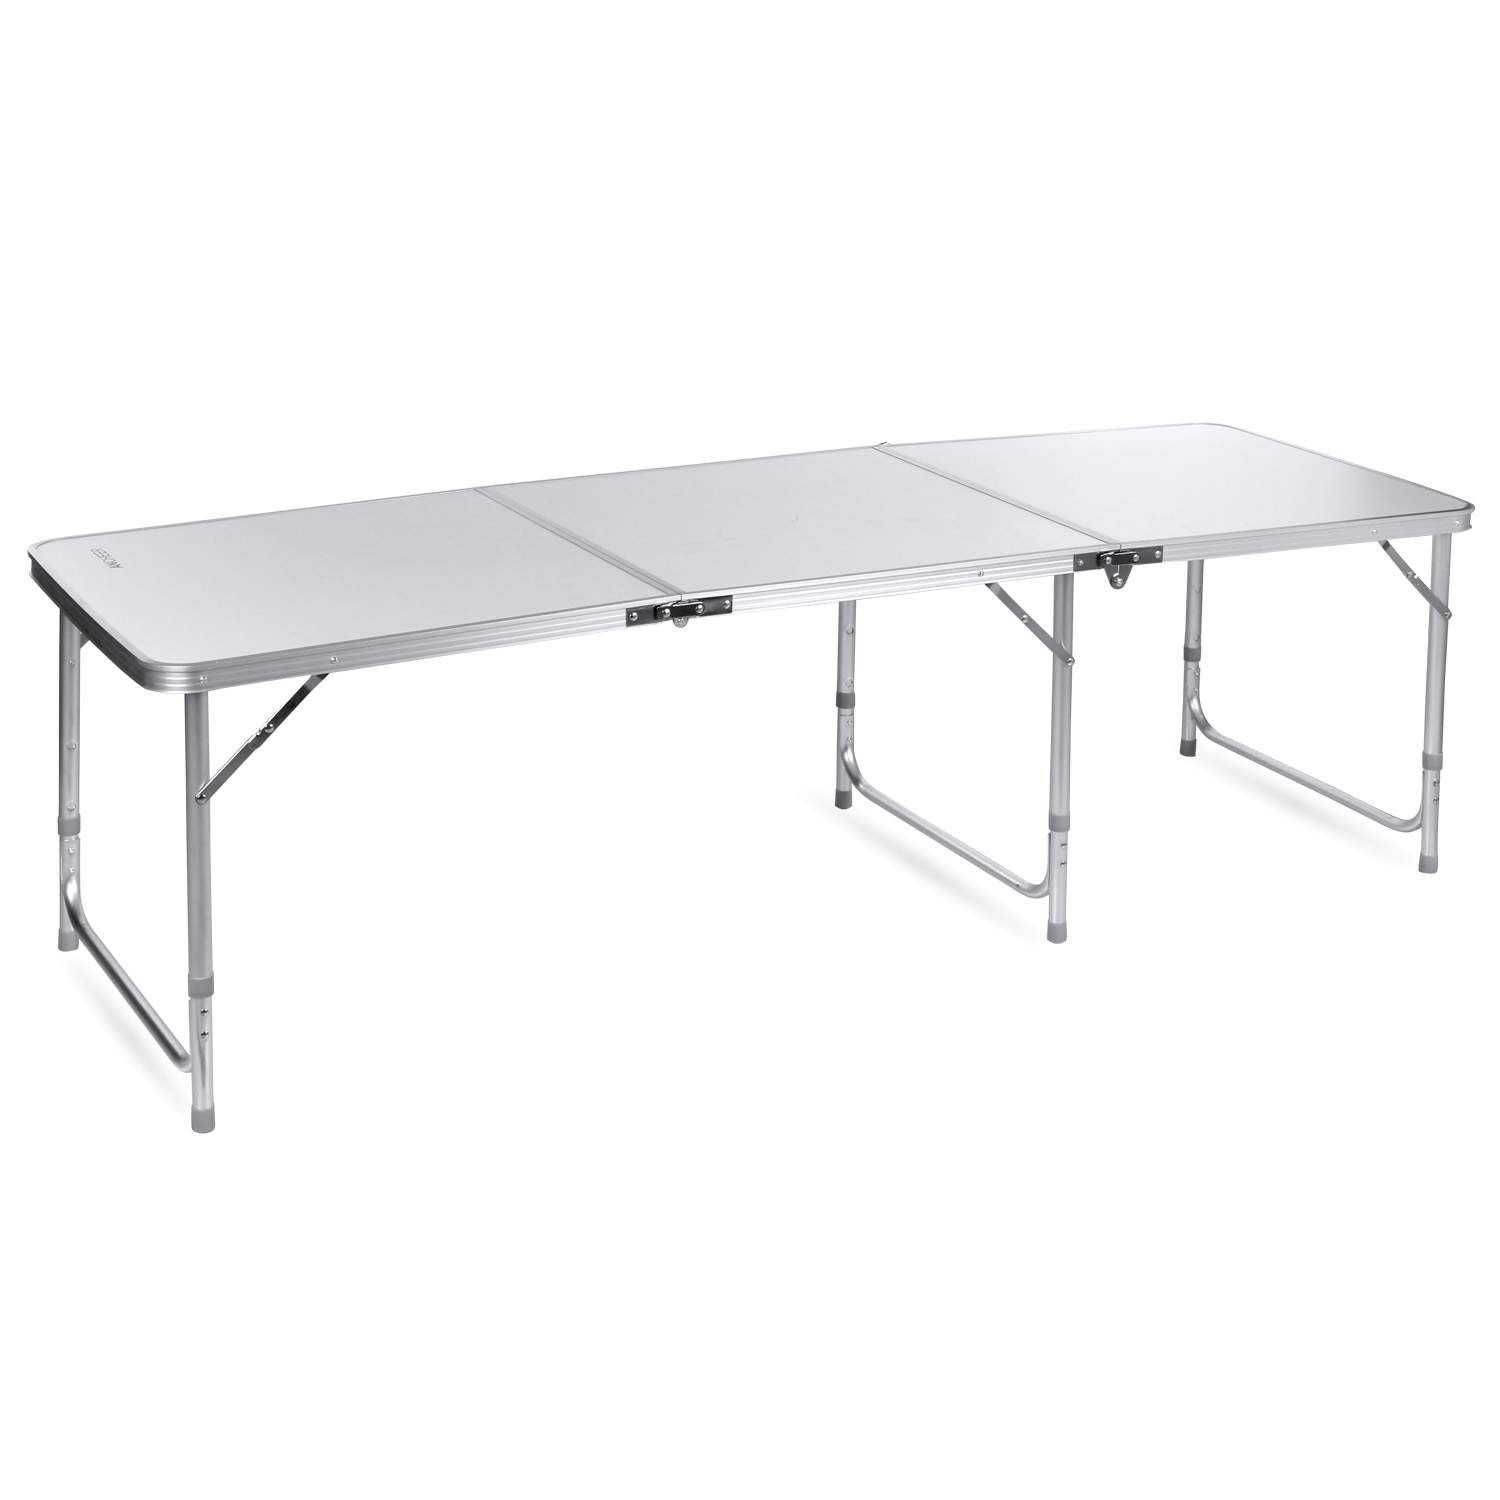 Where To Buy Folding Table In Singapore Folding Table Aluminum Table Aluminum Folding Table